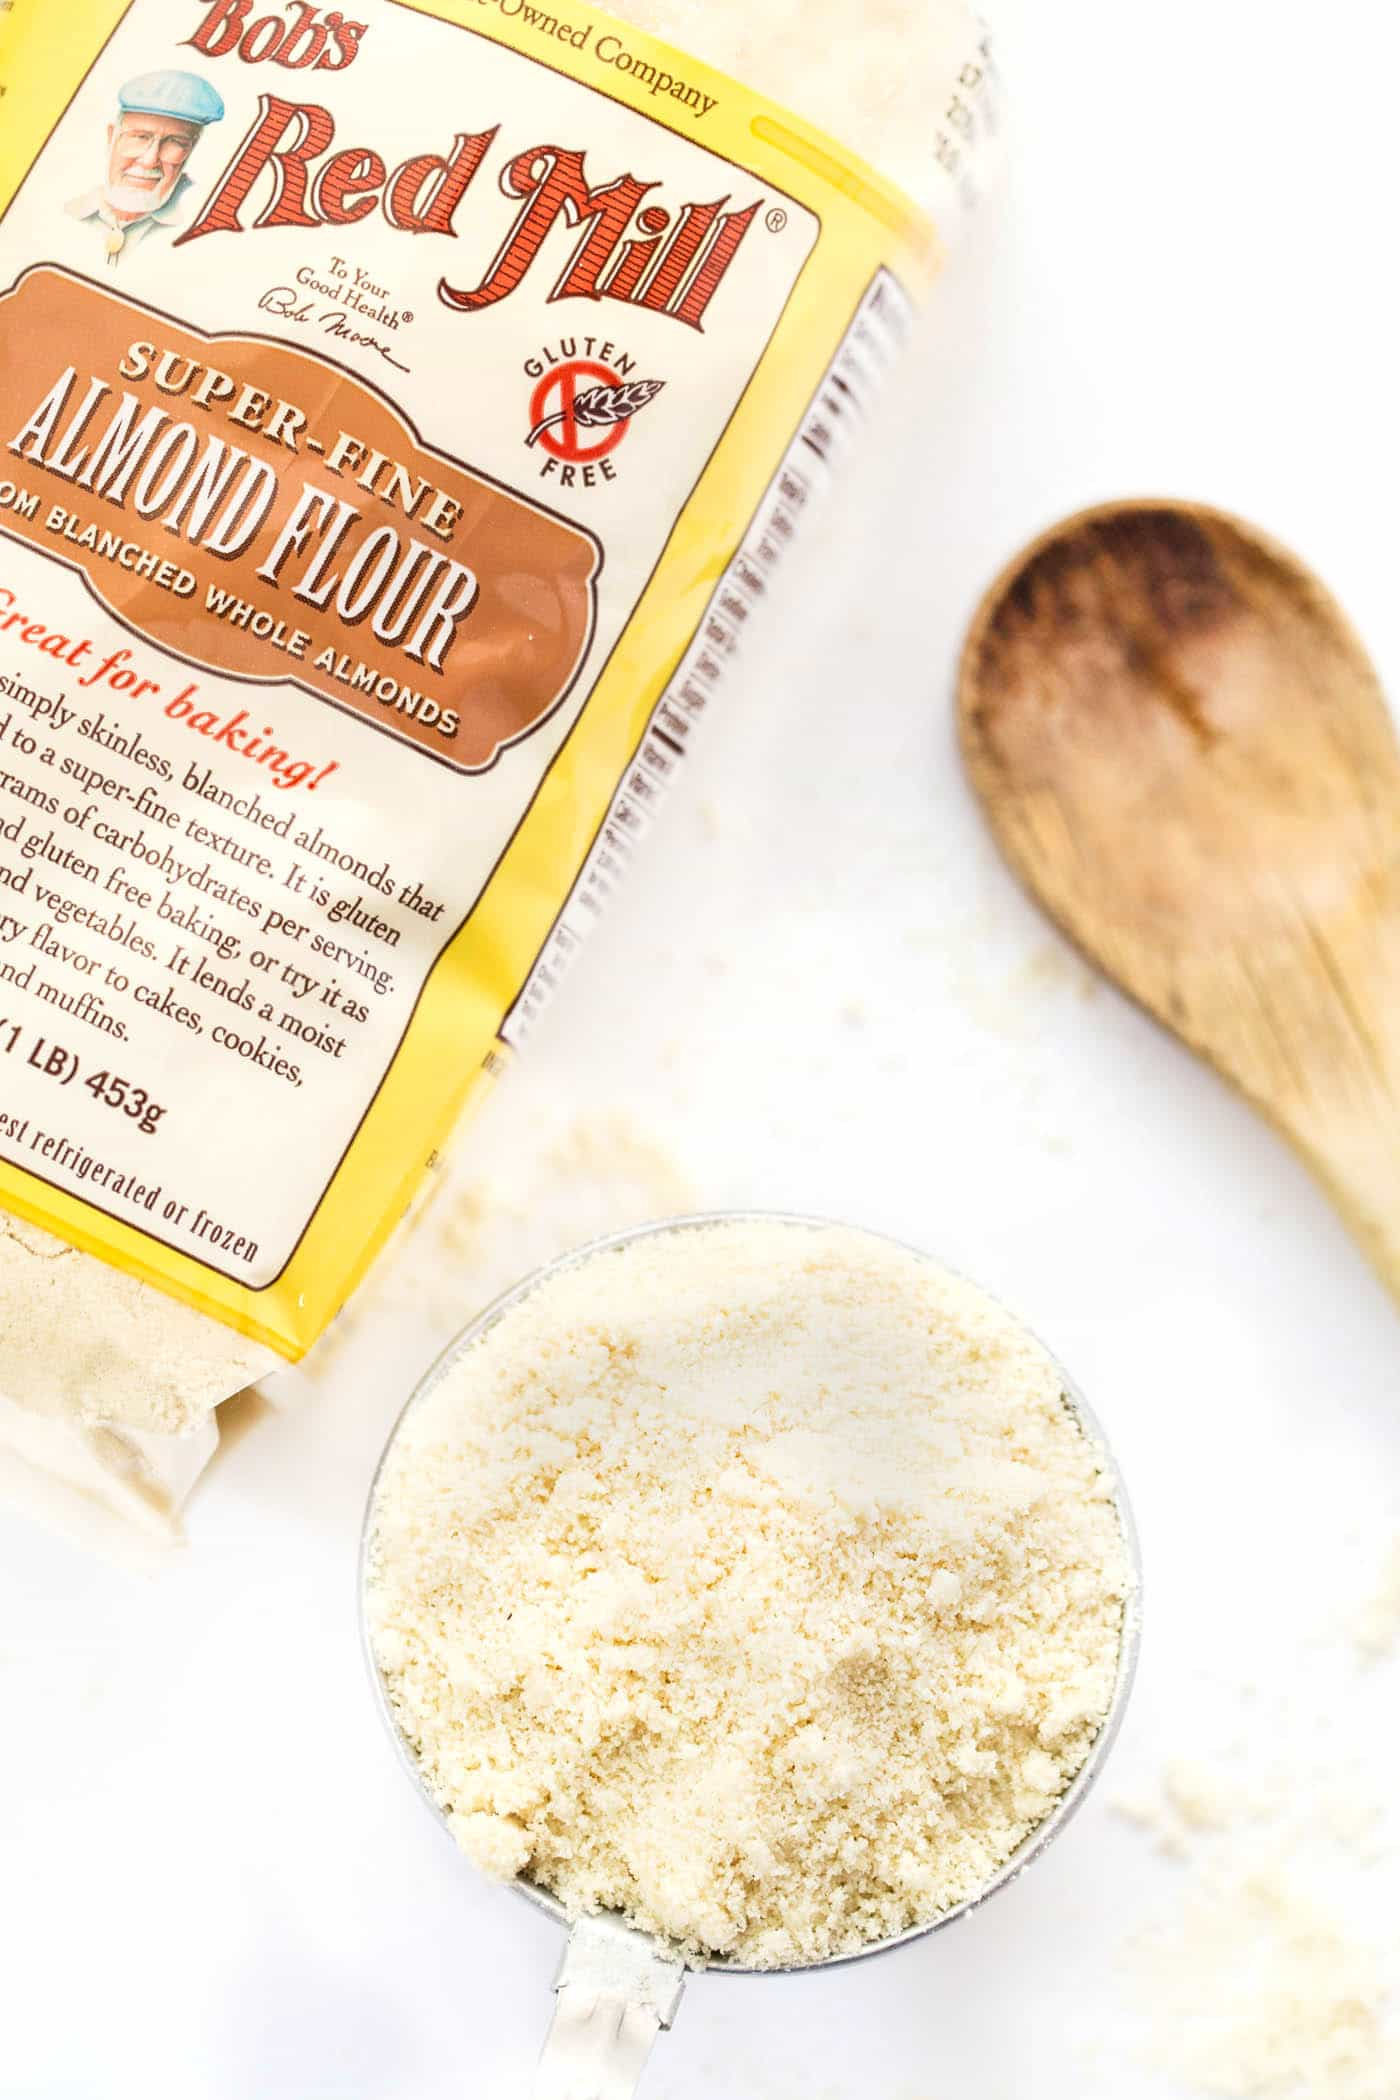 How to make Almond Flour Crust